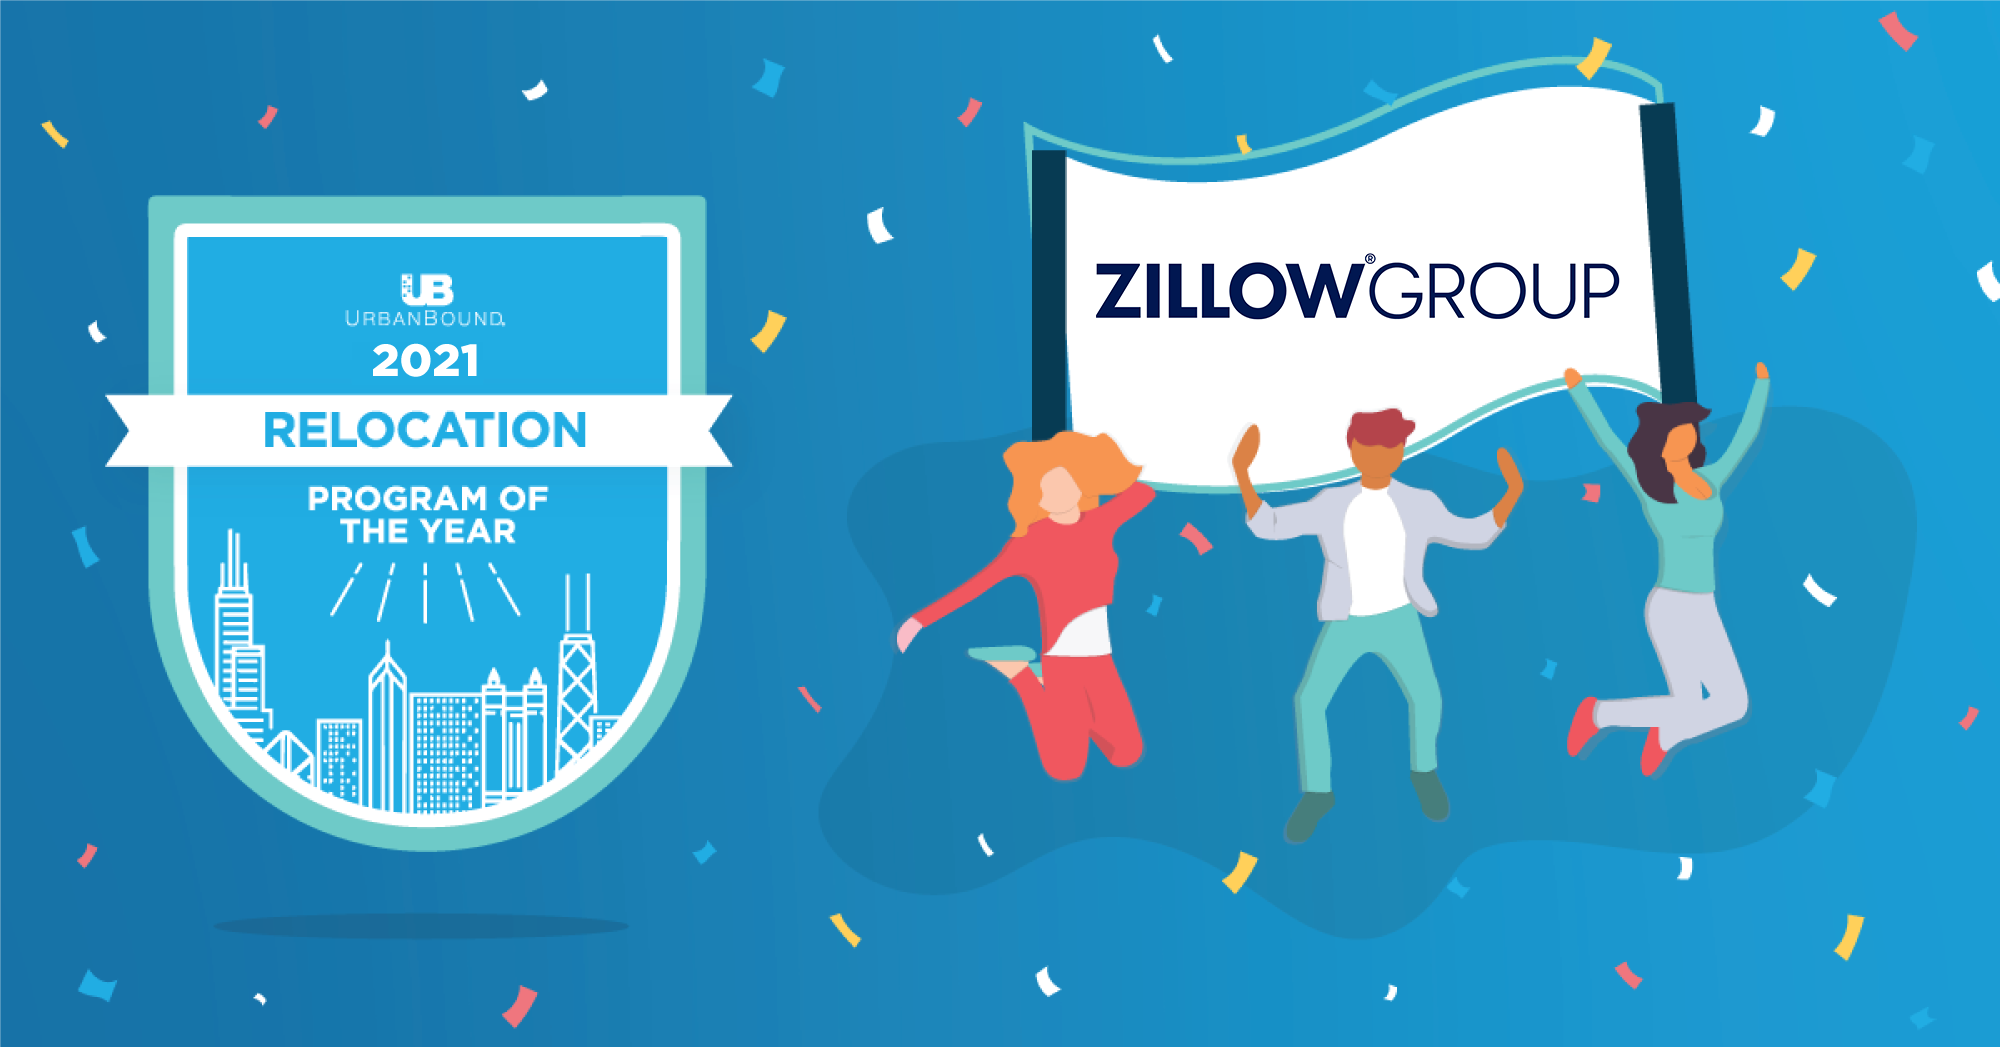 Zillow-Group-UrbanBound-Relocation-Program-of-the-Year-Award-Banner-1